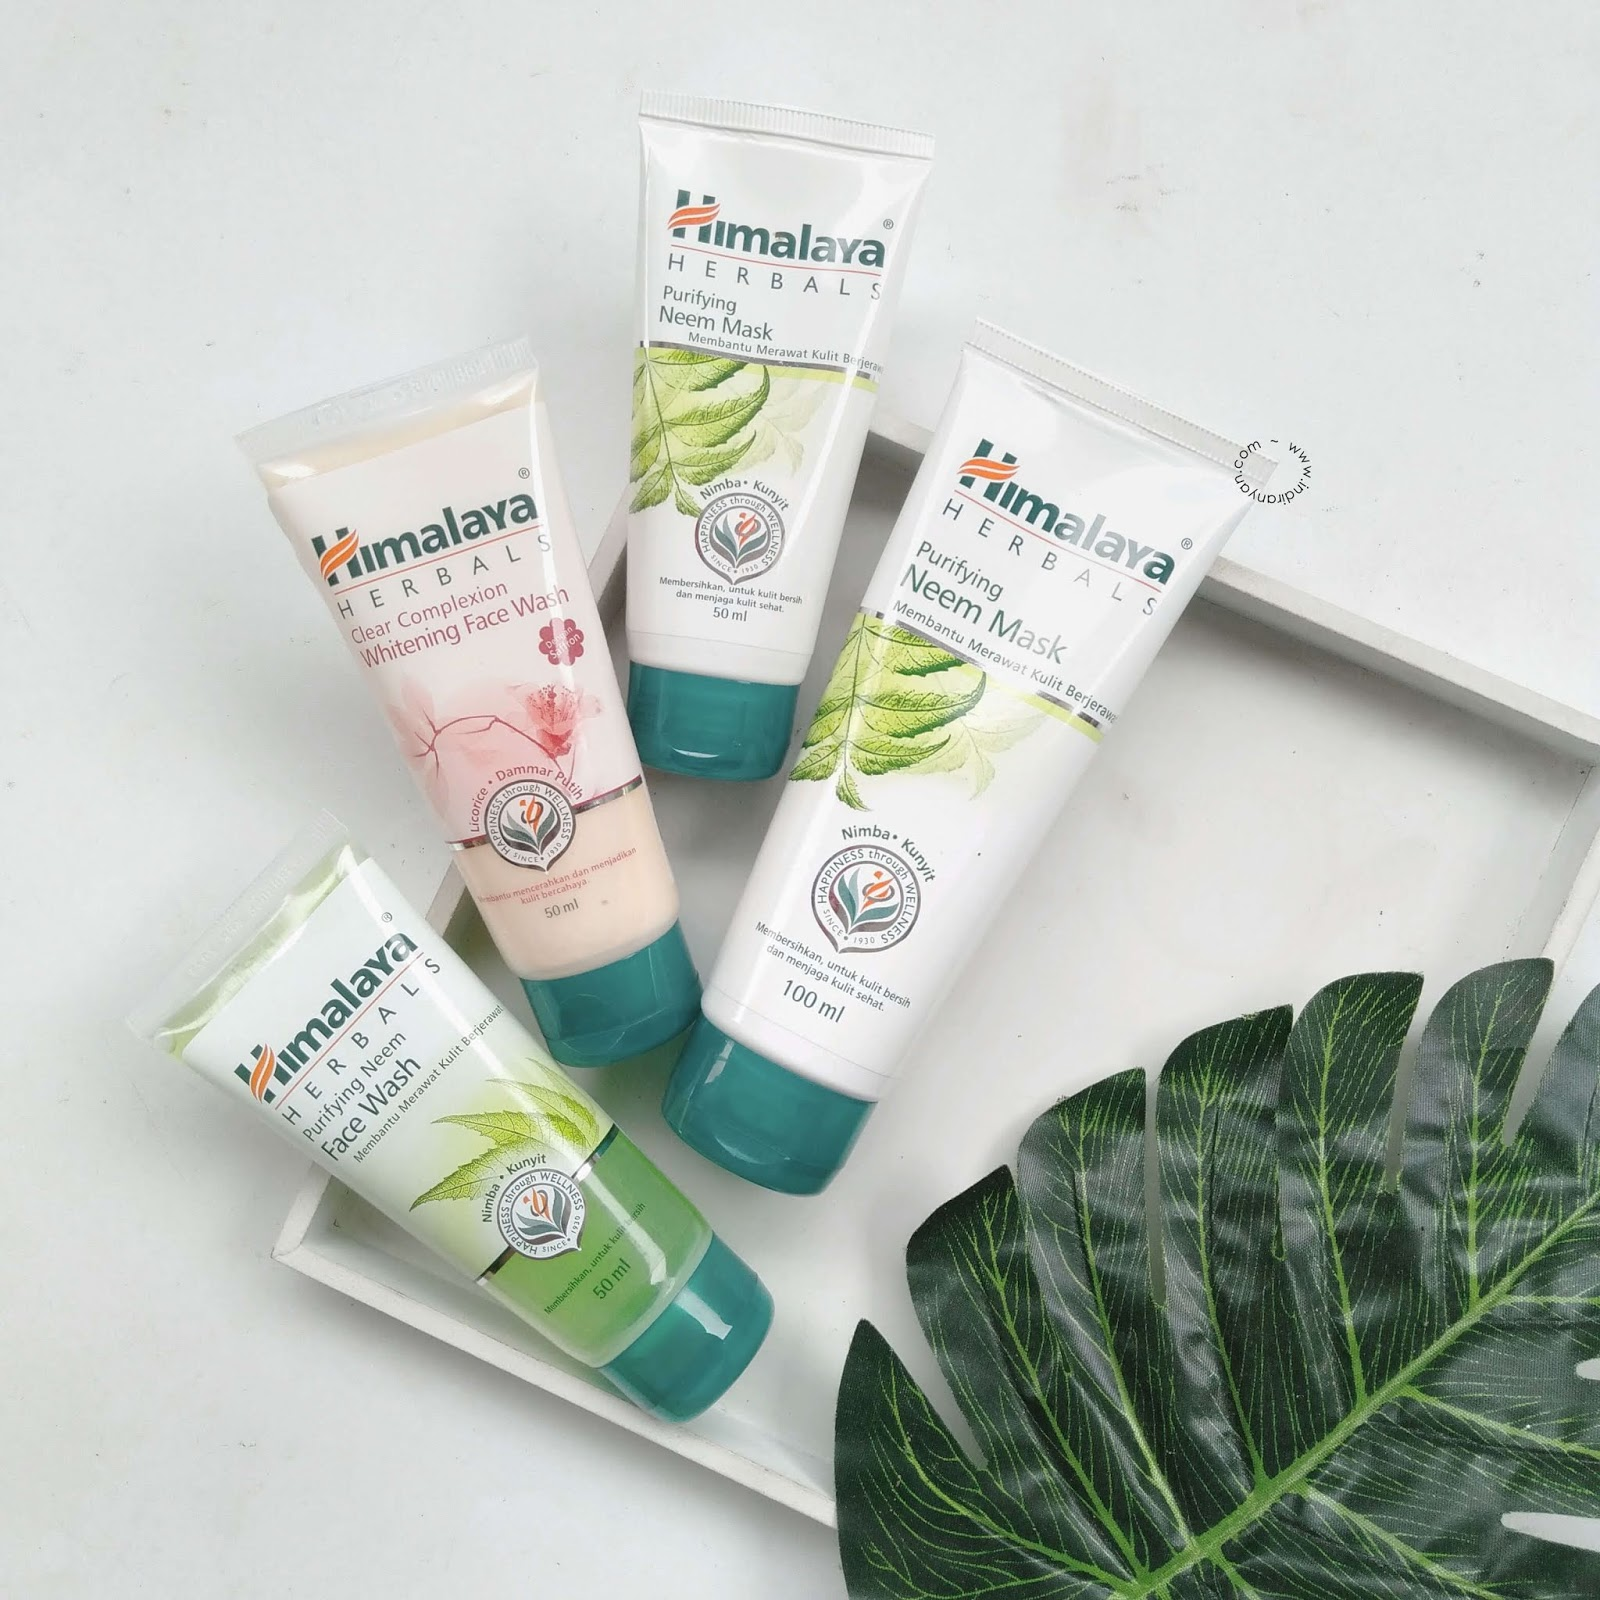 produk-himalaya-herbal-indonesia